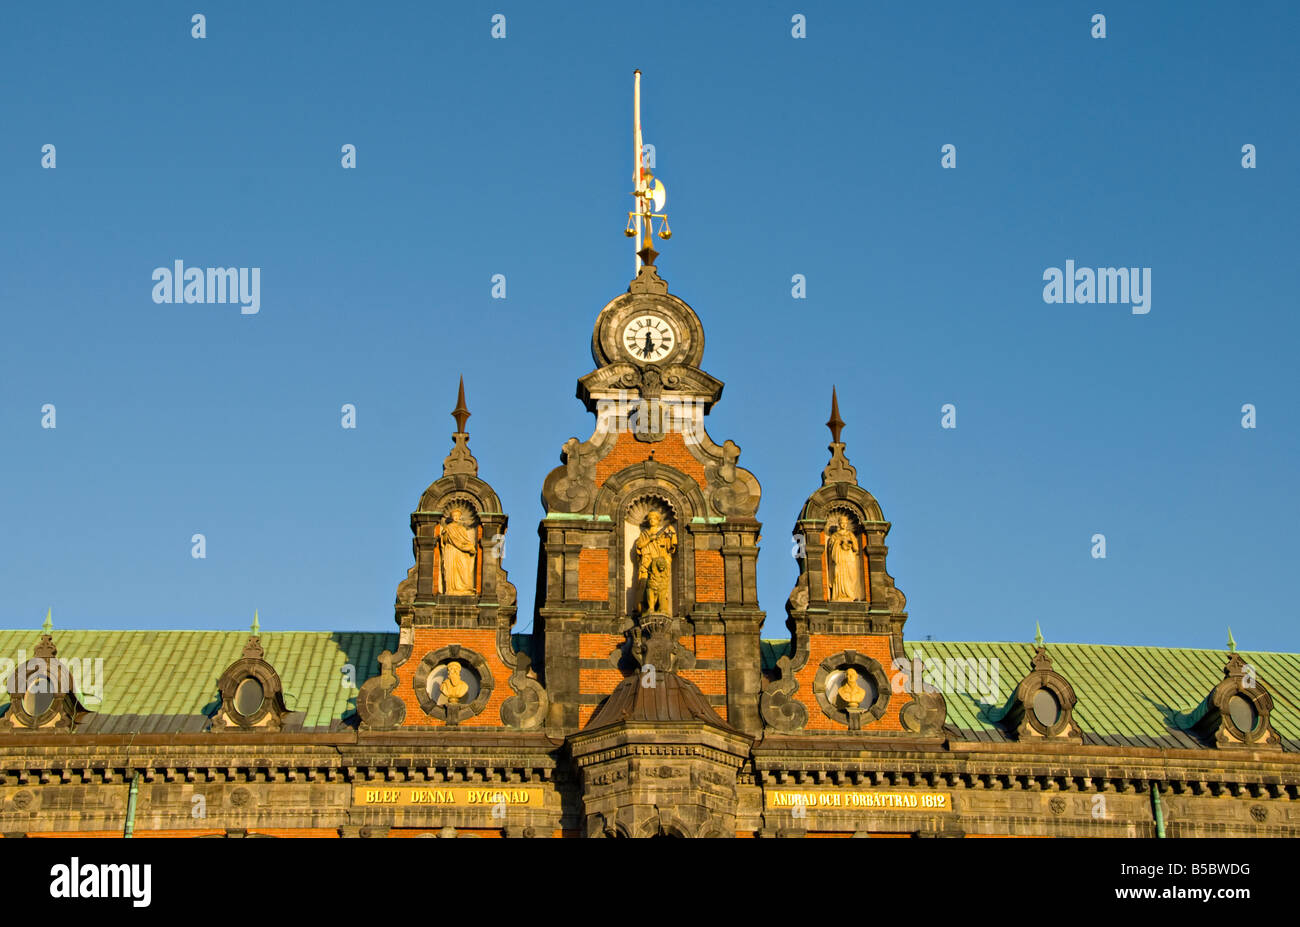 Close-up of the Town Hall Building in Malmø, Sweden. - Stock Image